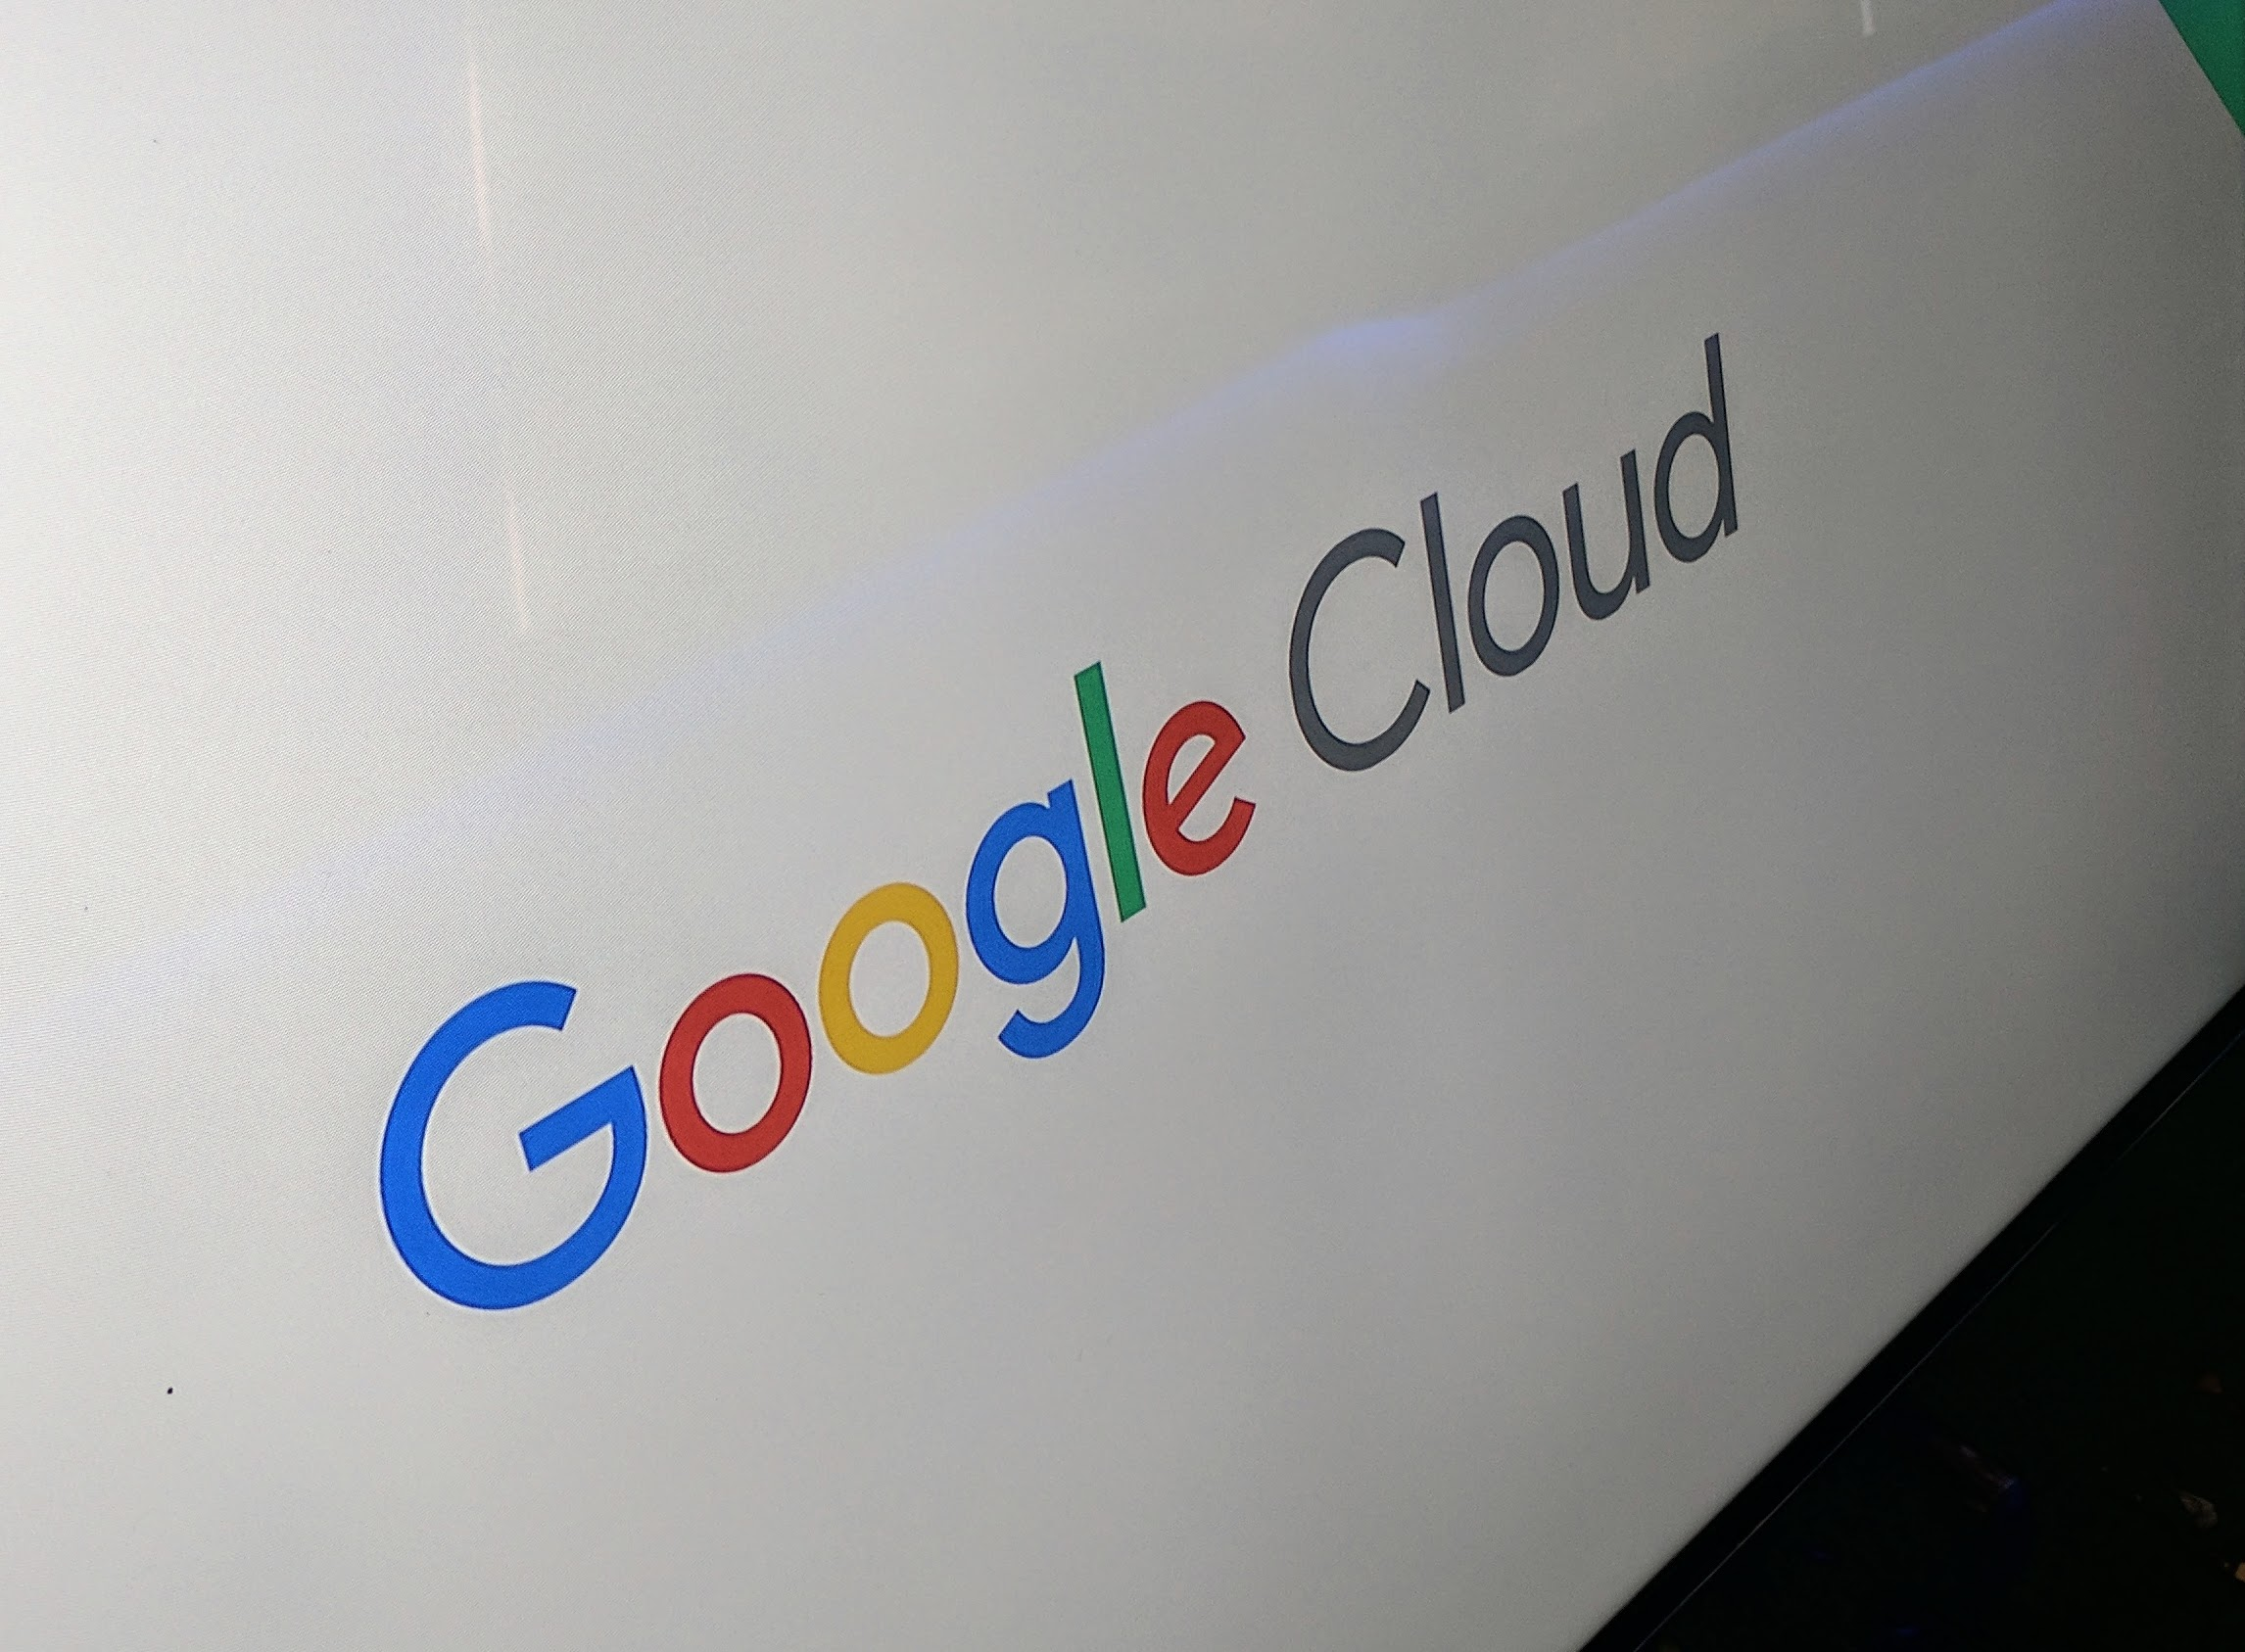 How to transfer photos from verizon cloud to google